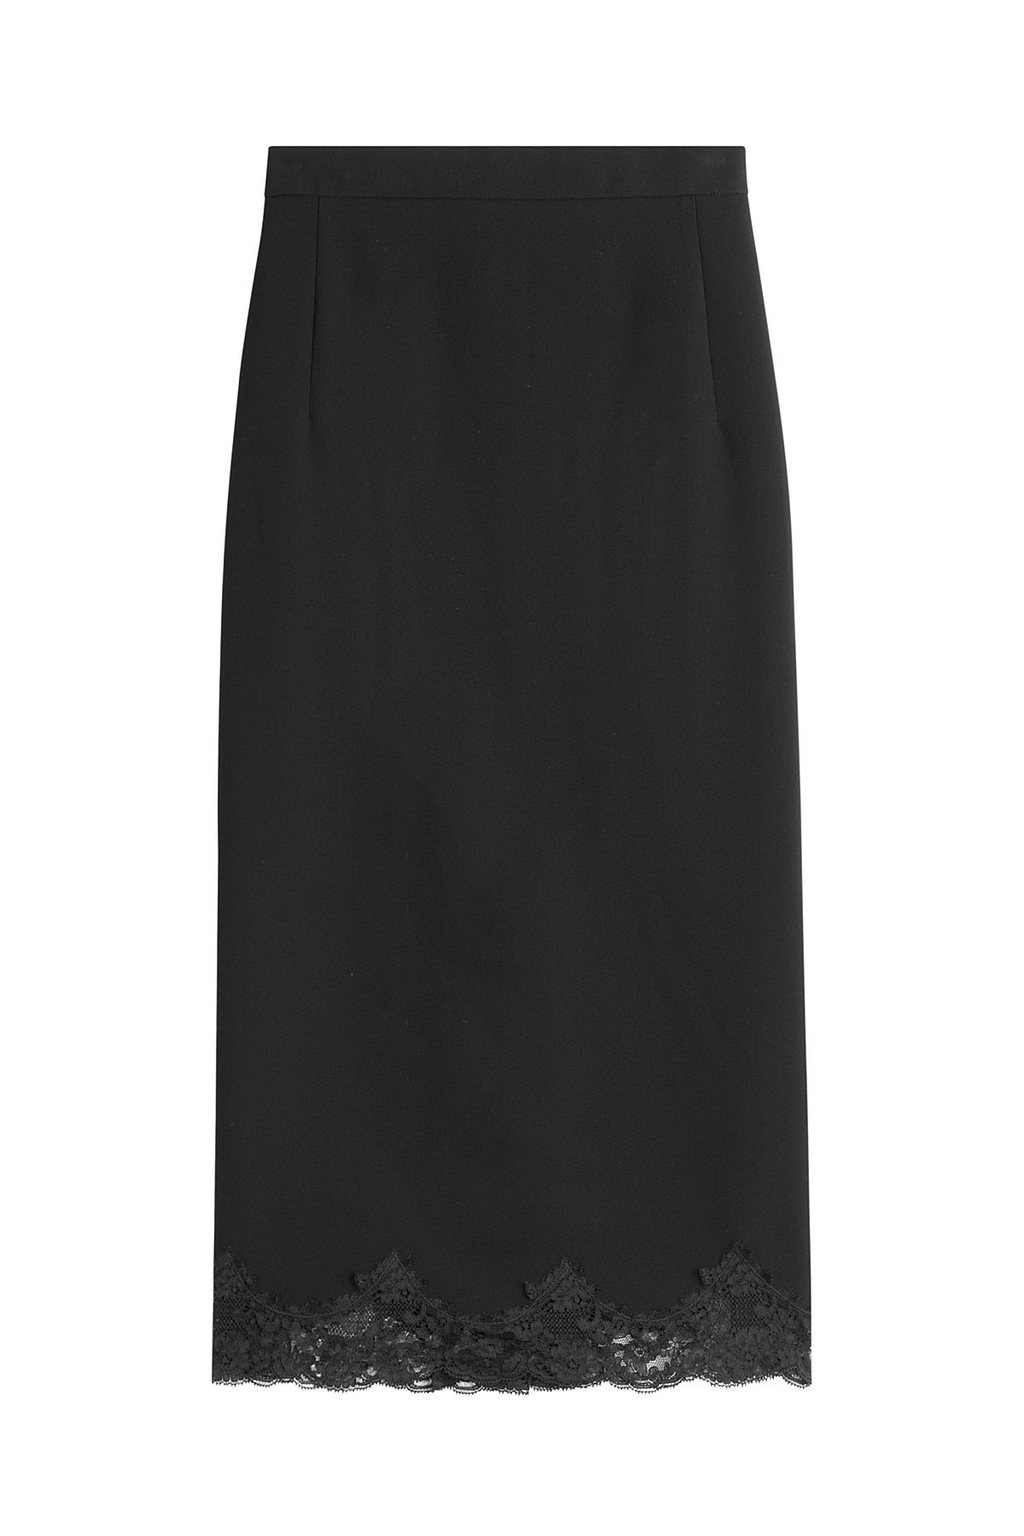 Pencil Skirt With Lace - length: below the knee; pattern: plain; style: pencil; fit: tailored/fitted; waist: mid/regular rise; predominant colour: black; occasions: evening, occasion; fibres: viscose/rayon - stretch; pattern type: fabric; texture group: other - light to midweight; embellishment: lace; season: a/w 2016; wardrobe: event; embellishment location: hem